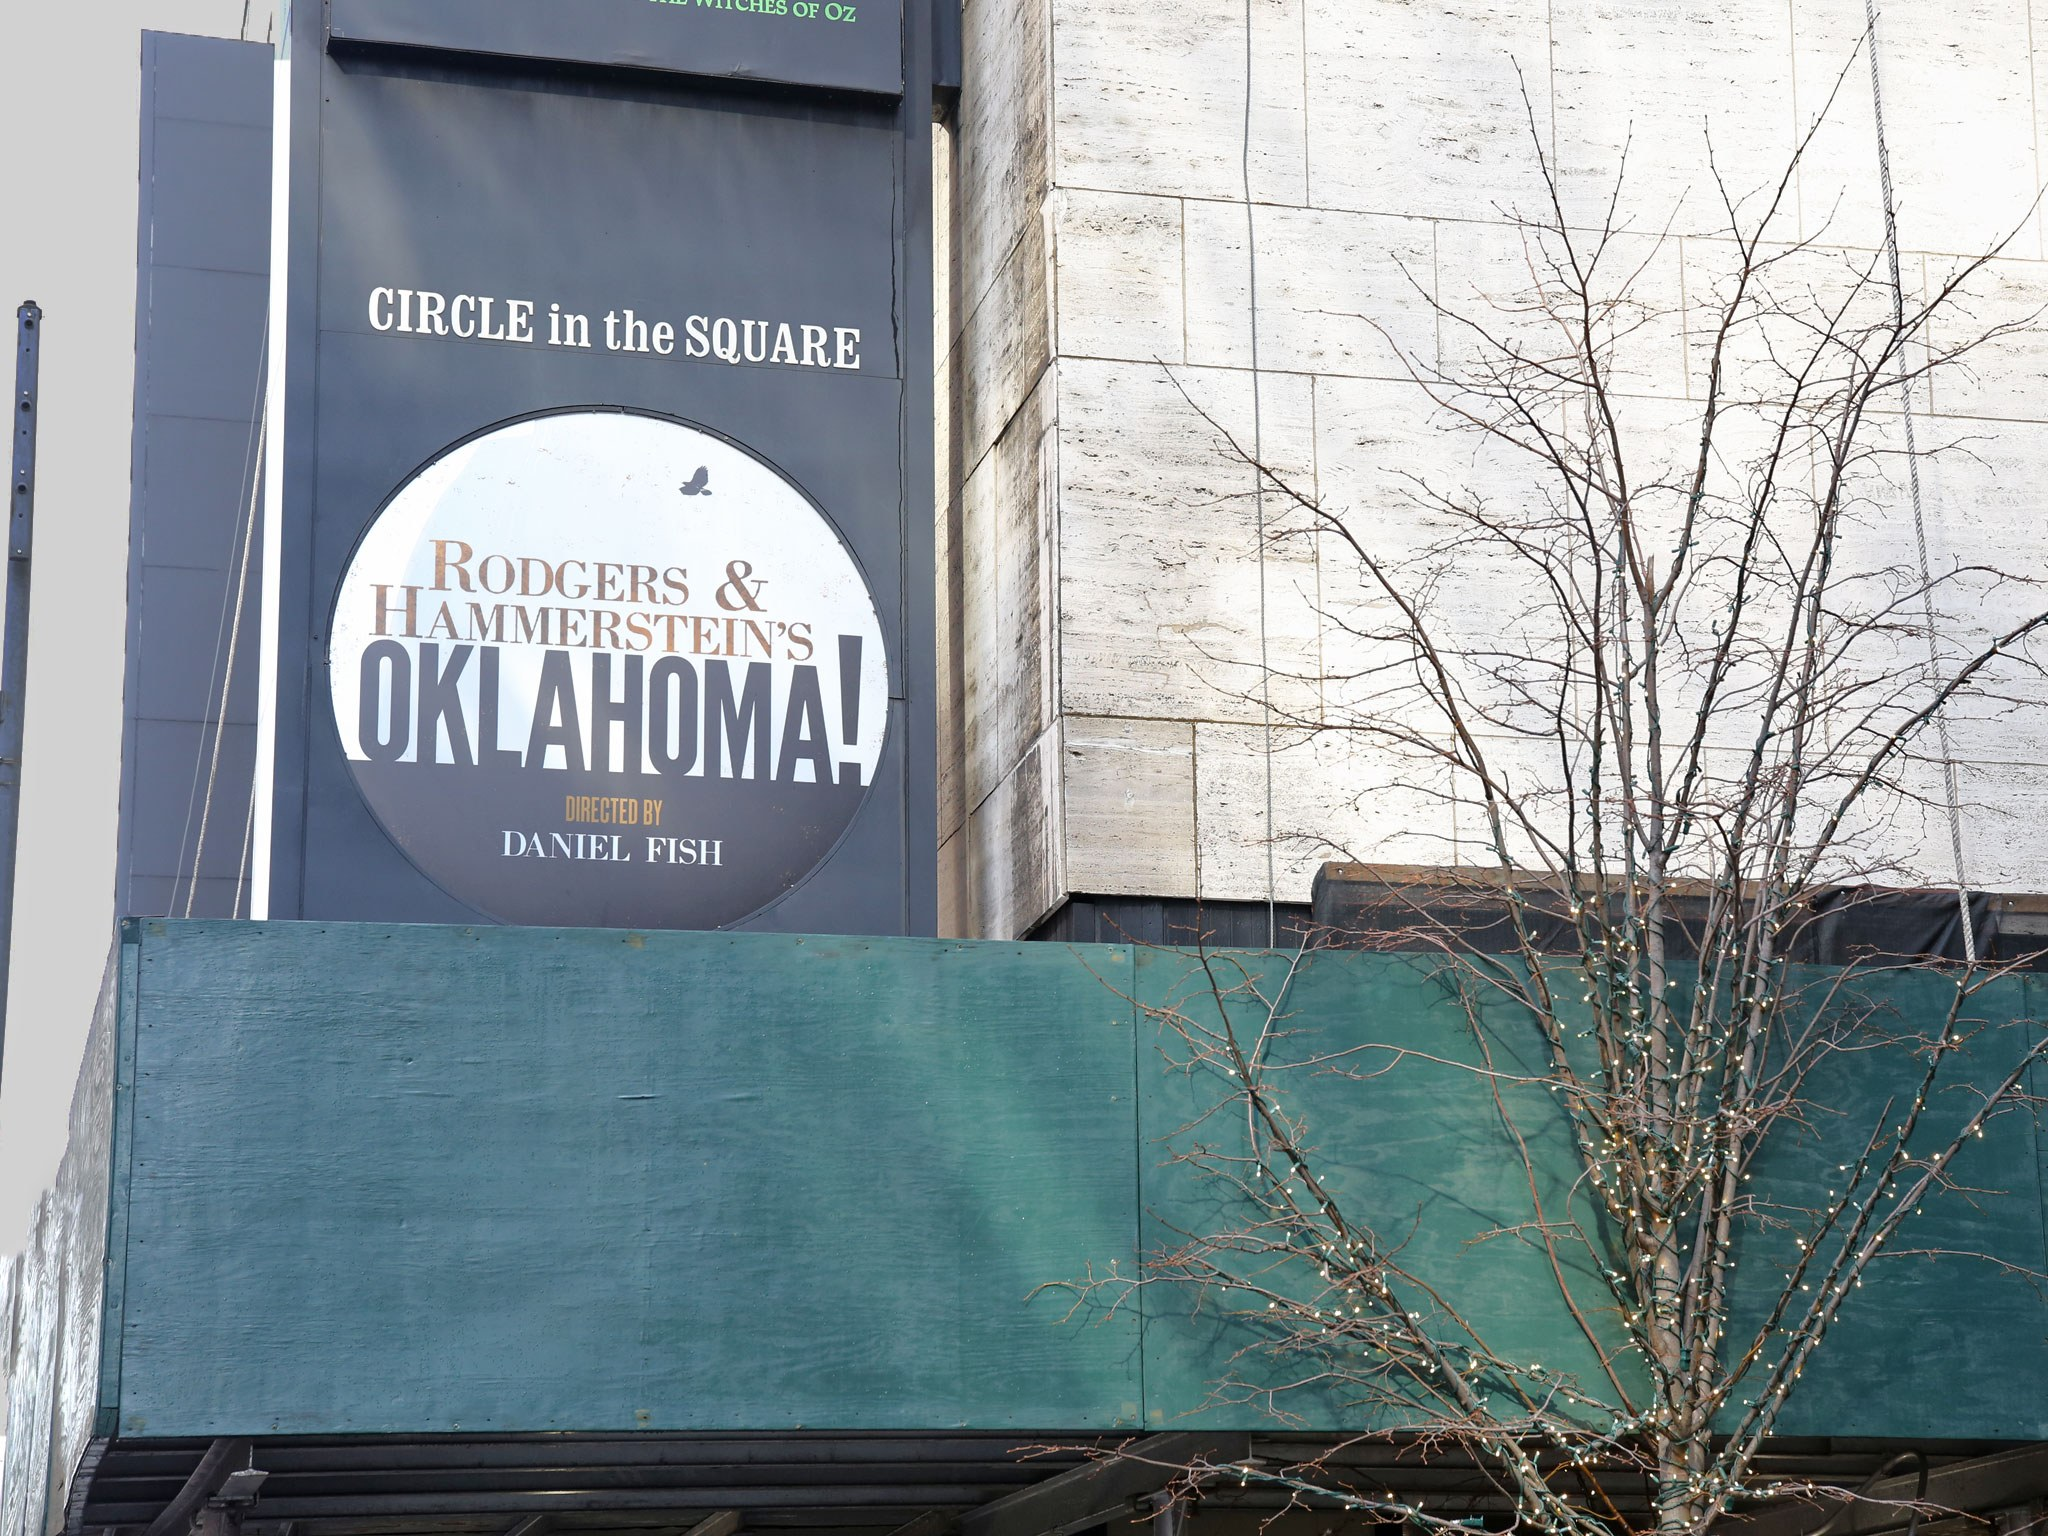 Oklahoma at Circle in the Square Theatre